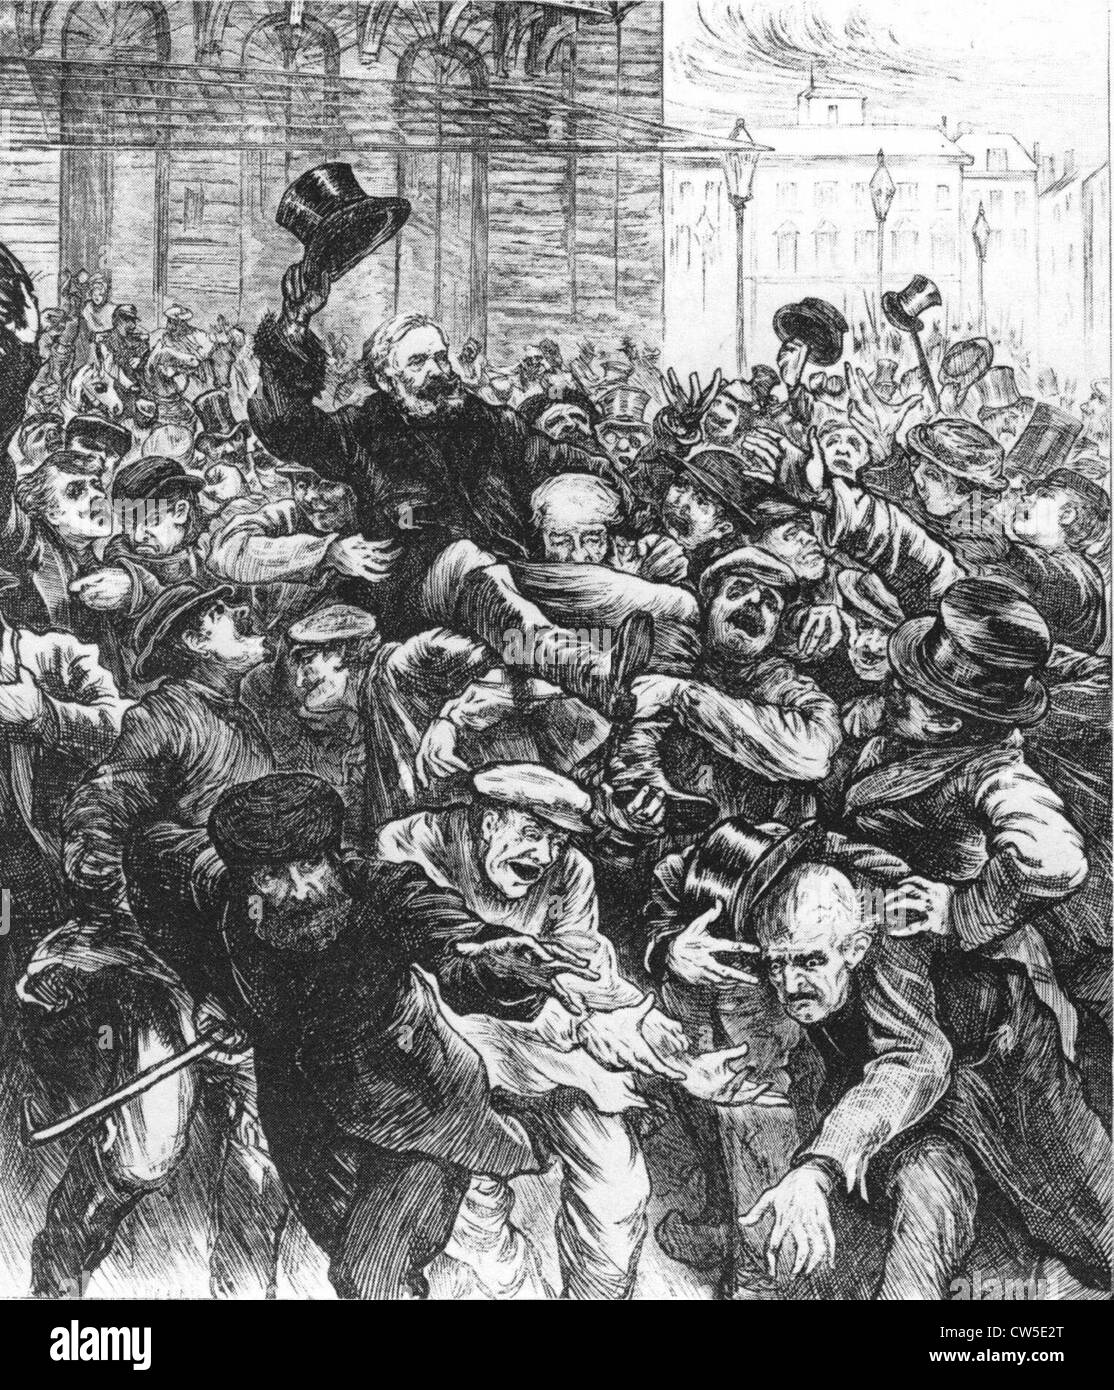 Swain popular members National Assembly acclaimed in streets Bordeaux in 'The Illustrated London news' march - Stock Image